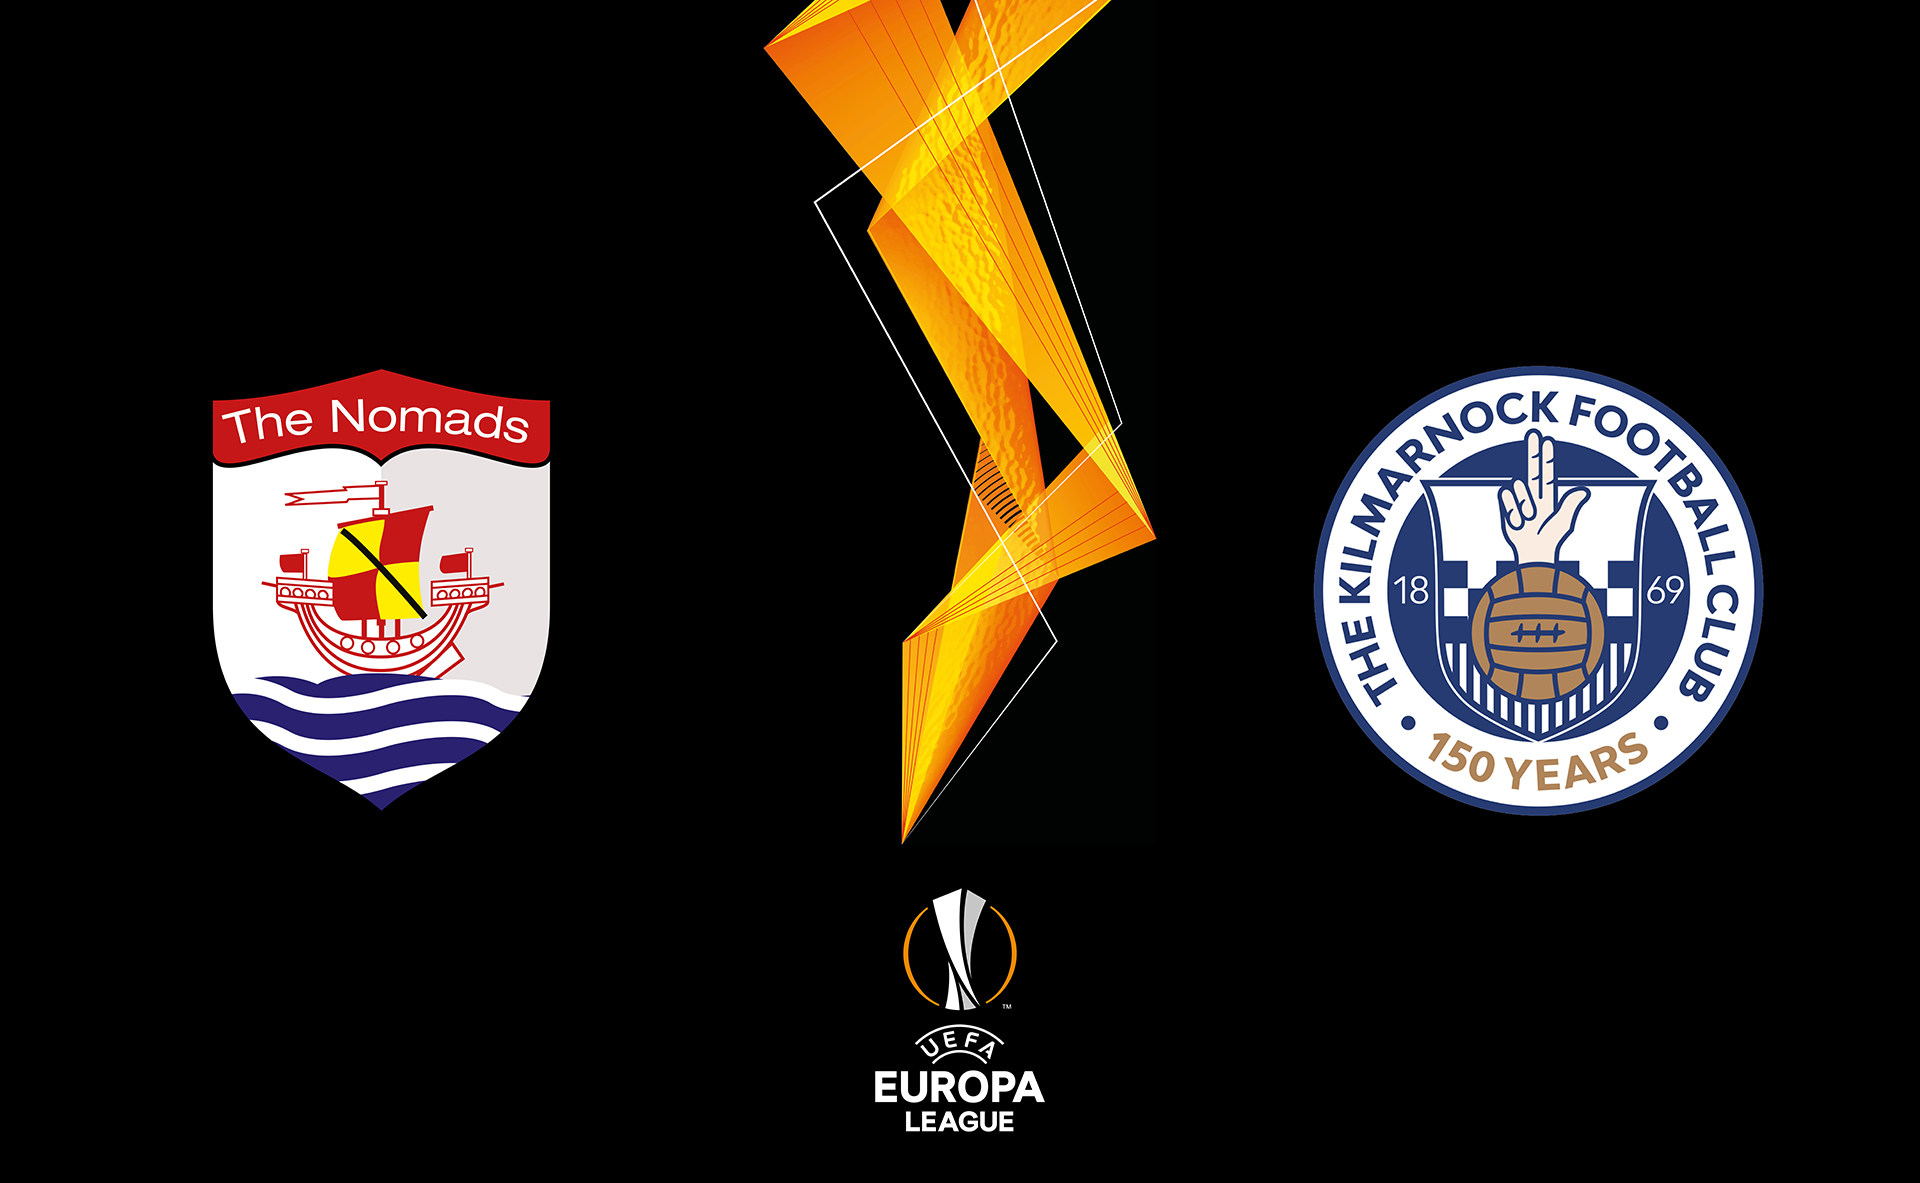 Connah's Quay Nomads vs Kilmarnock in he UEFA Europa League First Qualifying Round